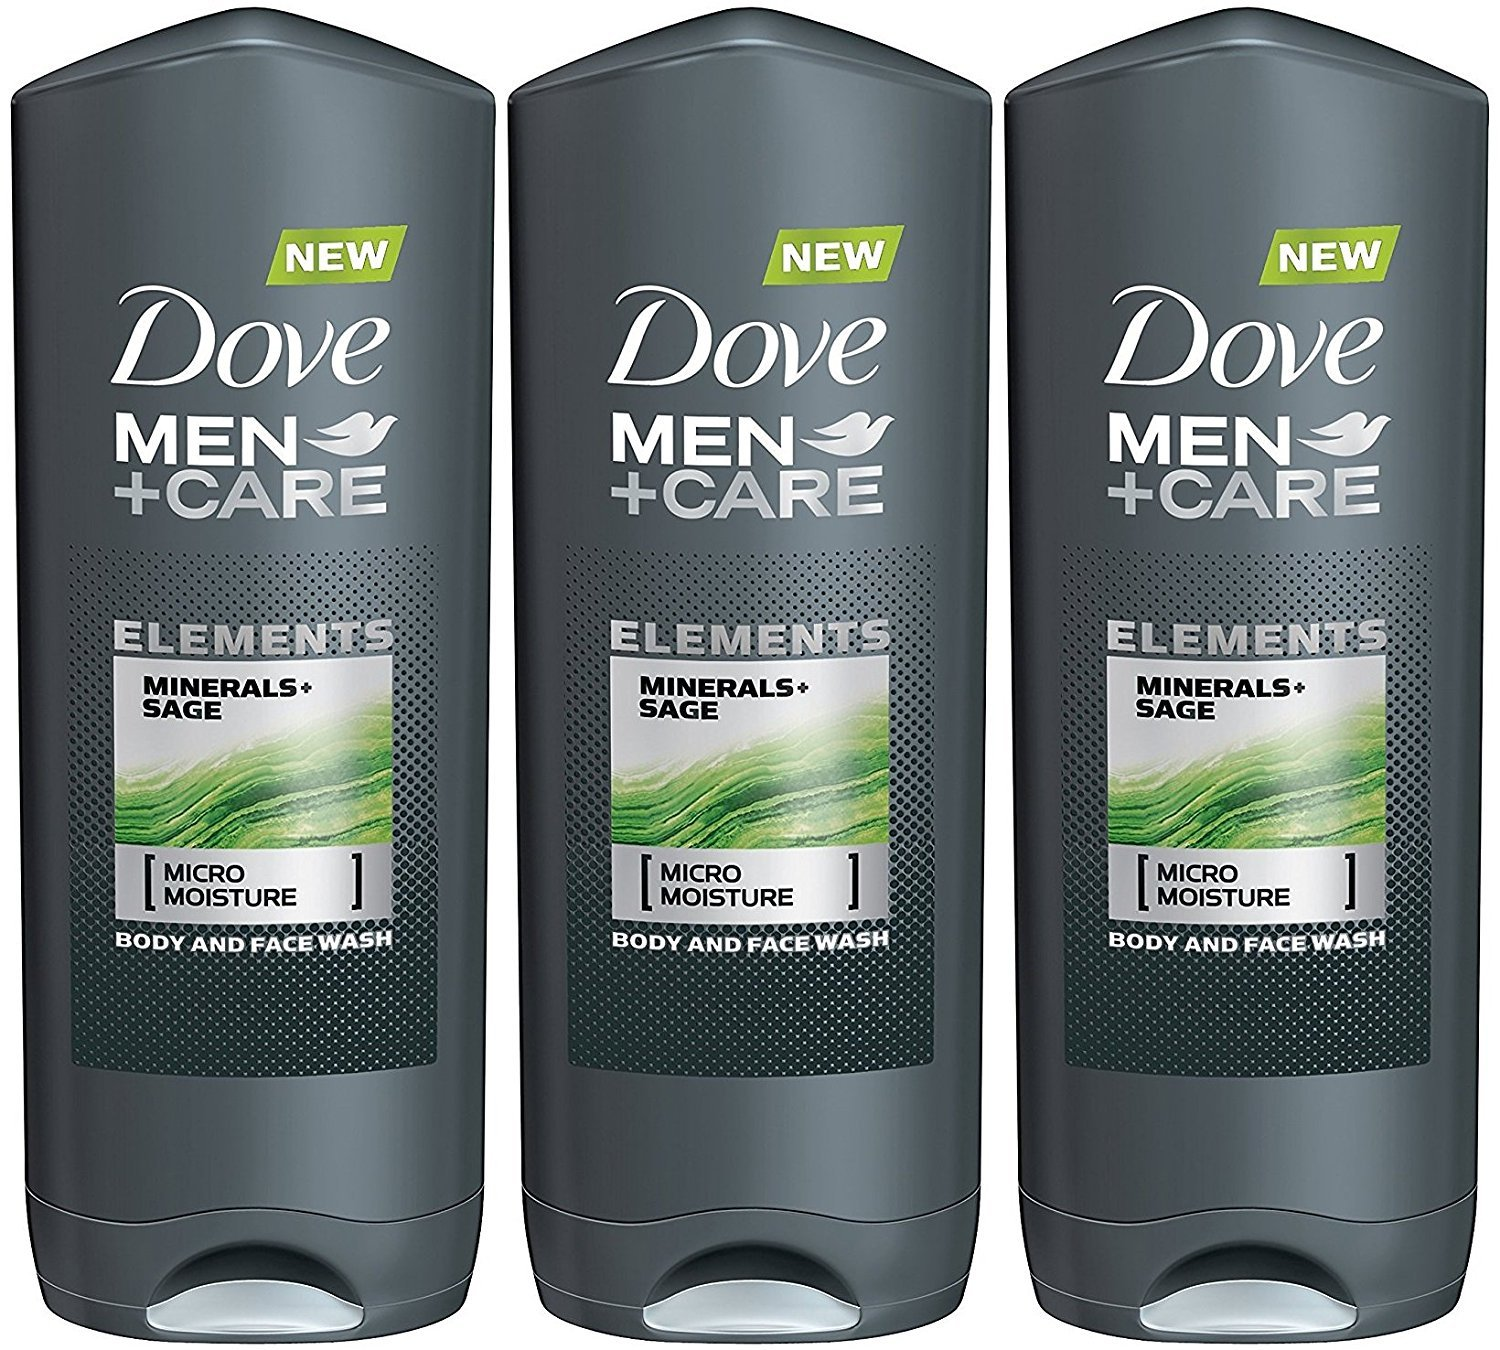 Dove Men + Care Elements Body Wash, Minerals and Sage, 13.5 Ounce(Pack of 3) by Dove